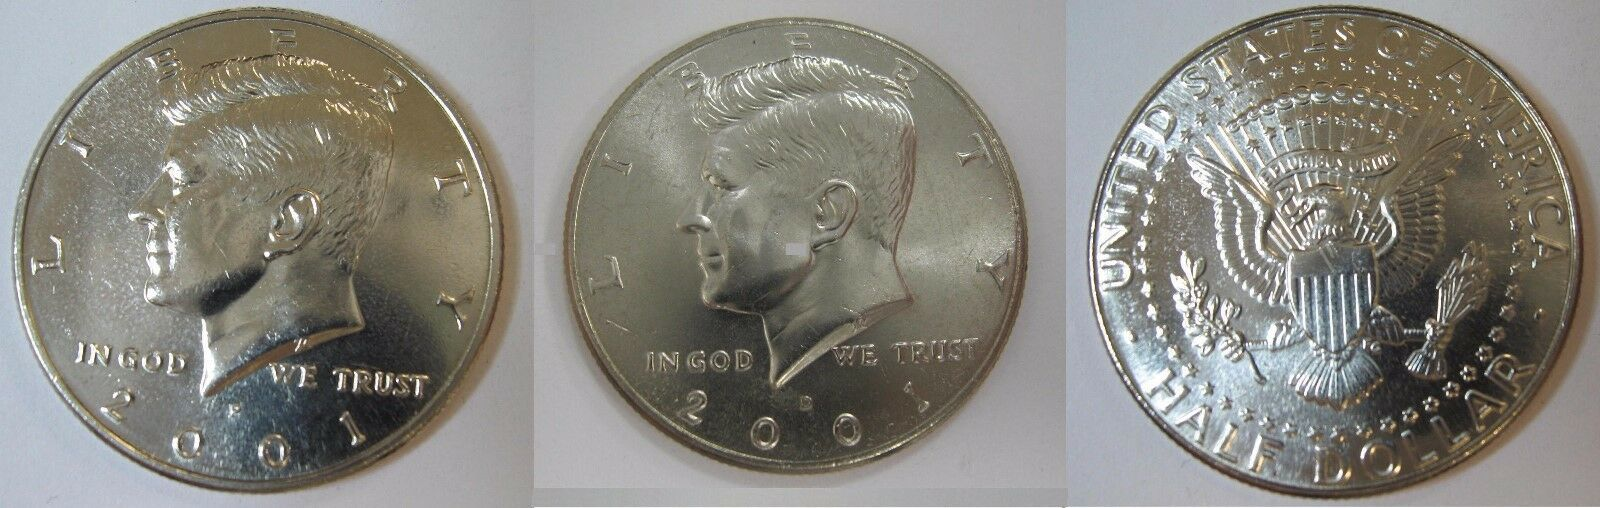 2001 P and D  BU Kennedy Half Dollar from US Mint Roll CP2429